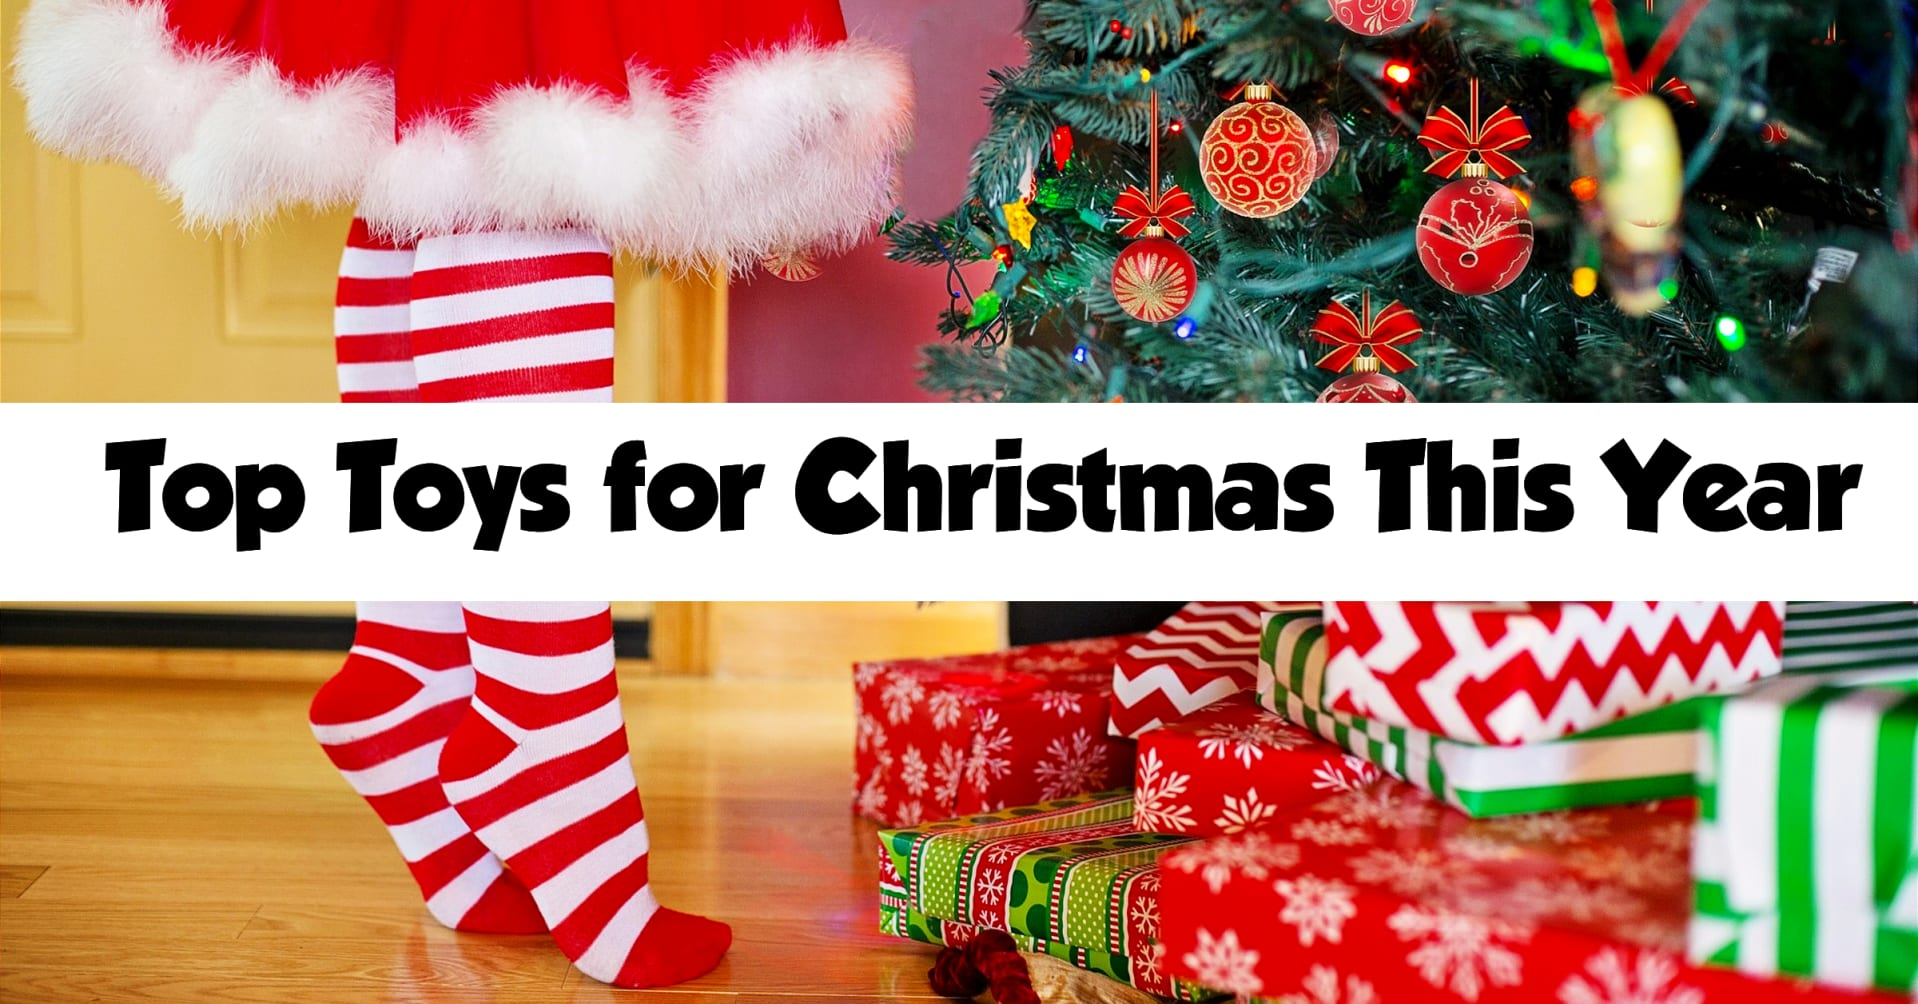 Top toys for Christmas this year